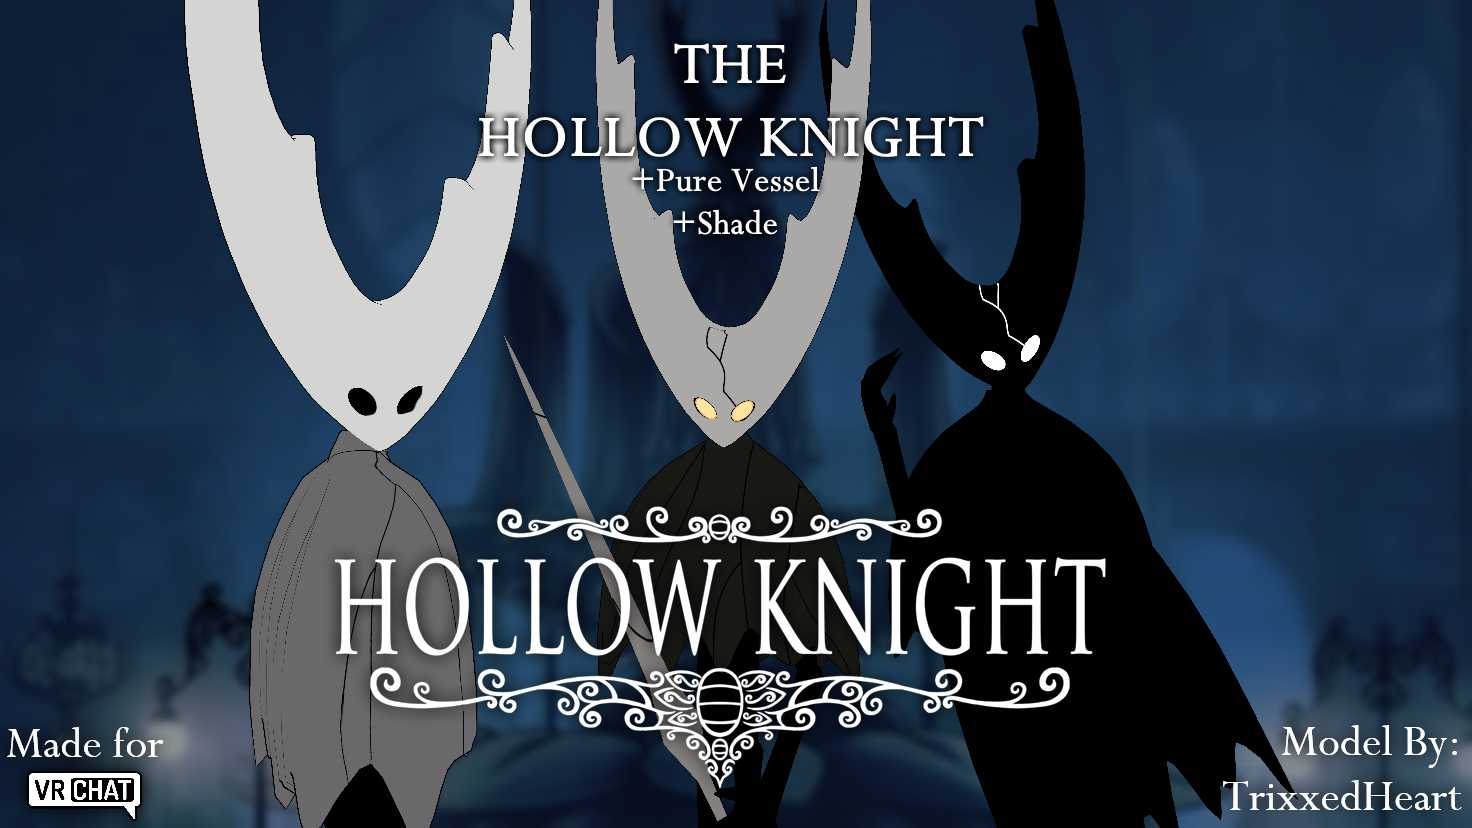 VRCMods - The Hollow Knight[Fixed Purple Textures] - VRChat Avatars